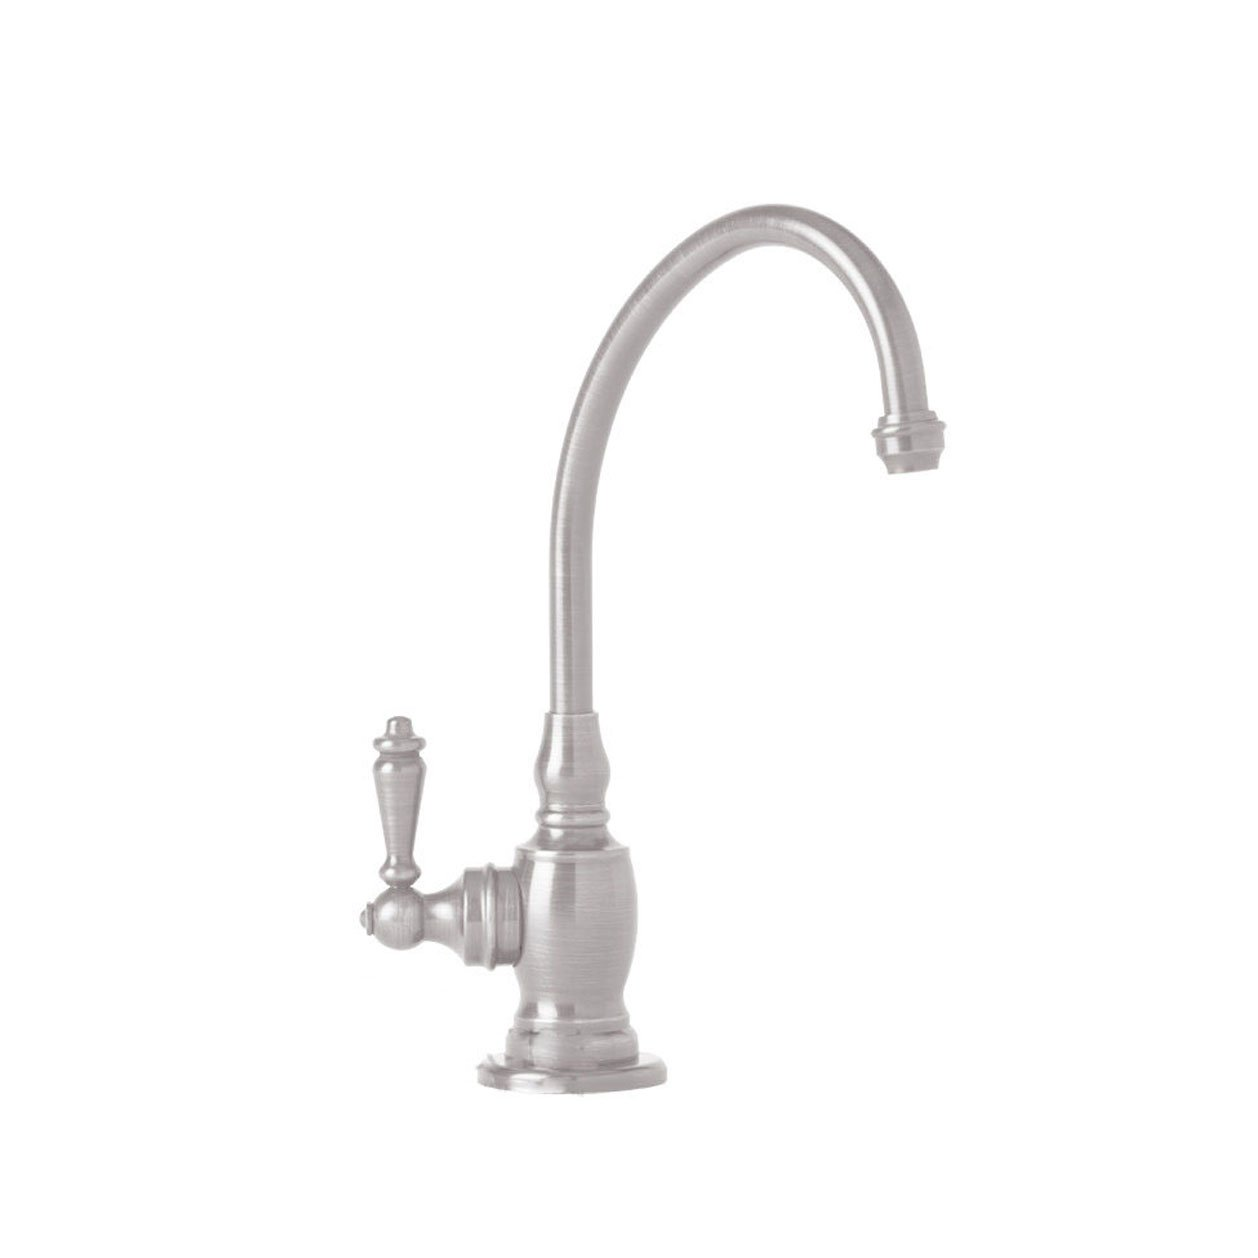 Waterstone 1200C-SN Annapolis Filtration Faucet Cold Only with Single Lever Handle, Satin Nickel